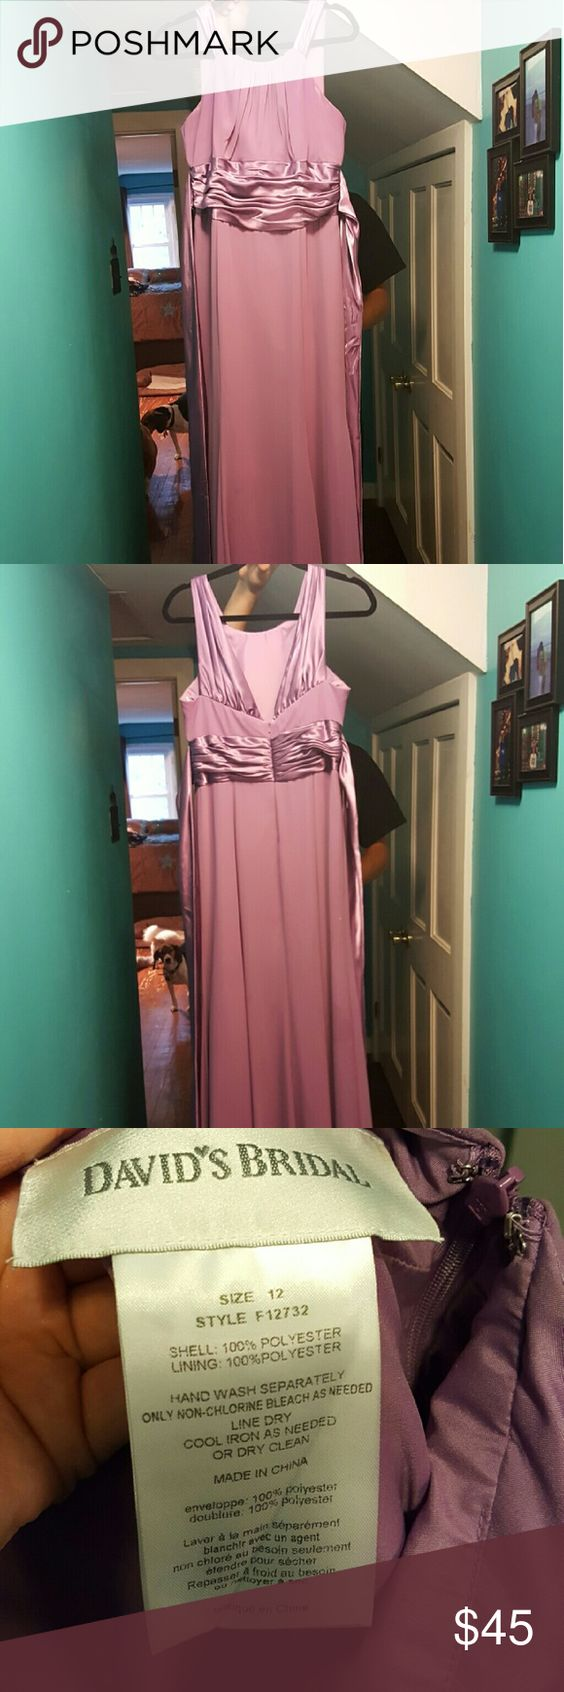 Worn once Davids bridal size 12 bridesmaid/prom dress David's Bridal Dresses Prom